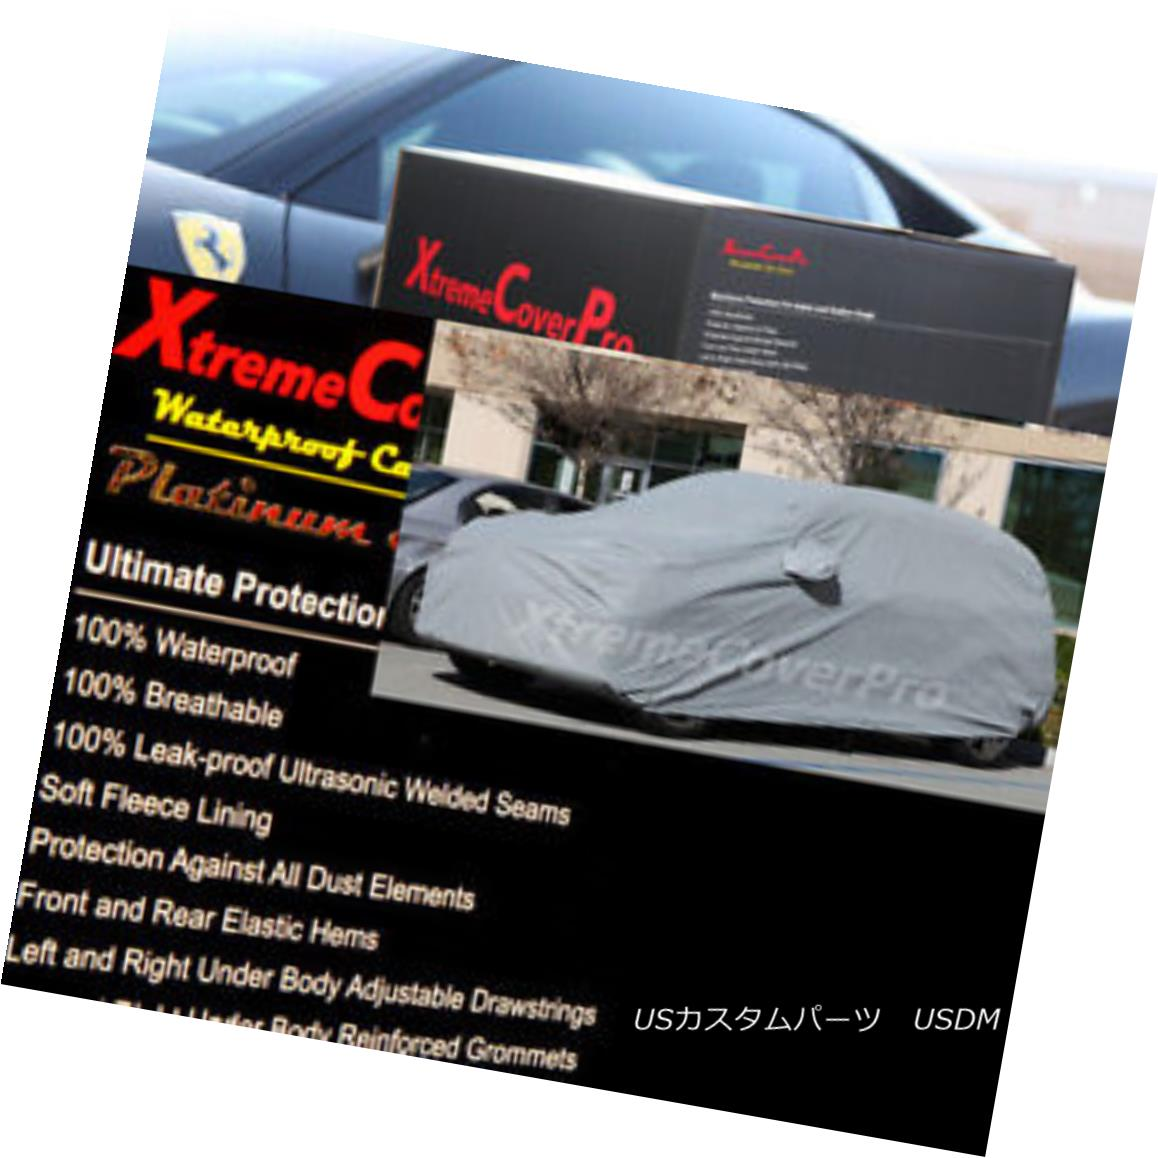 カーカバー 2015 TOYOTA HIGHLANDER Waterproof Car Cover w/Mirror Pockets - Gray 2015 TOYOTA HIGHLANDERミラーポケット付き防水カーカバー - グレー